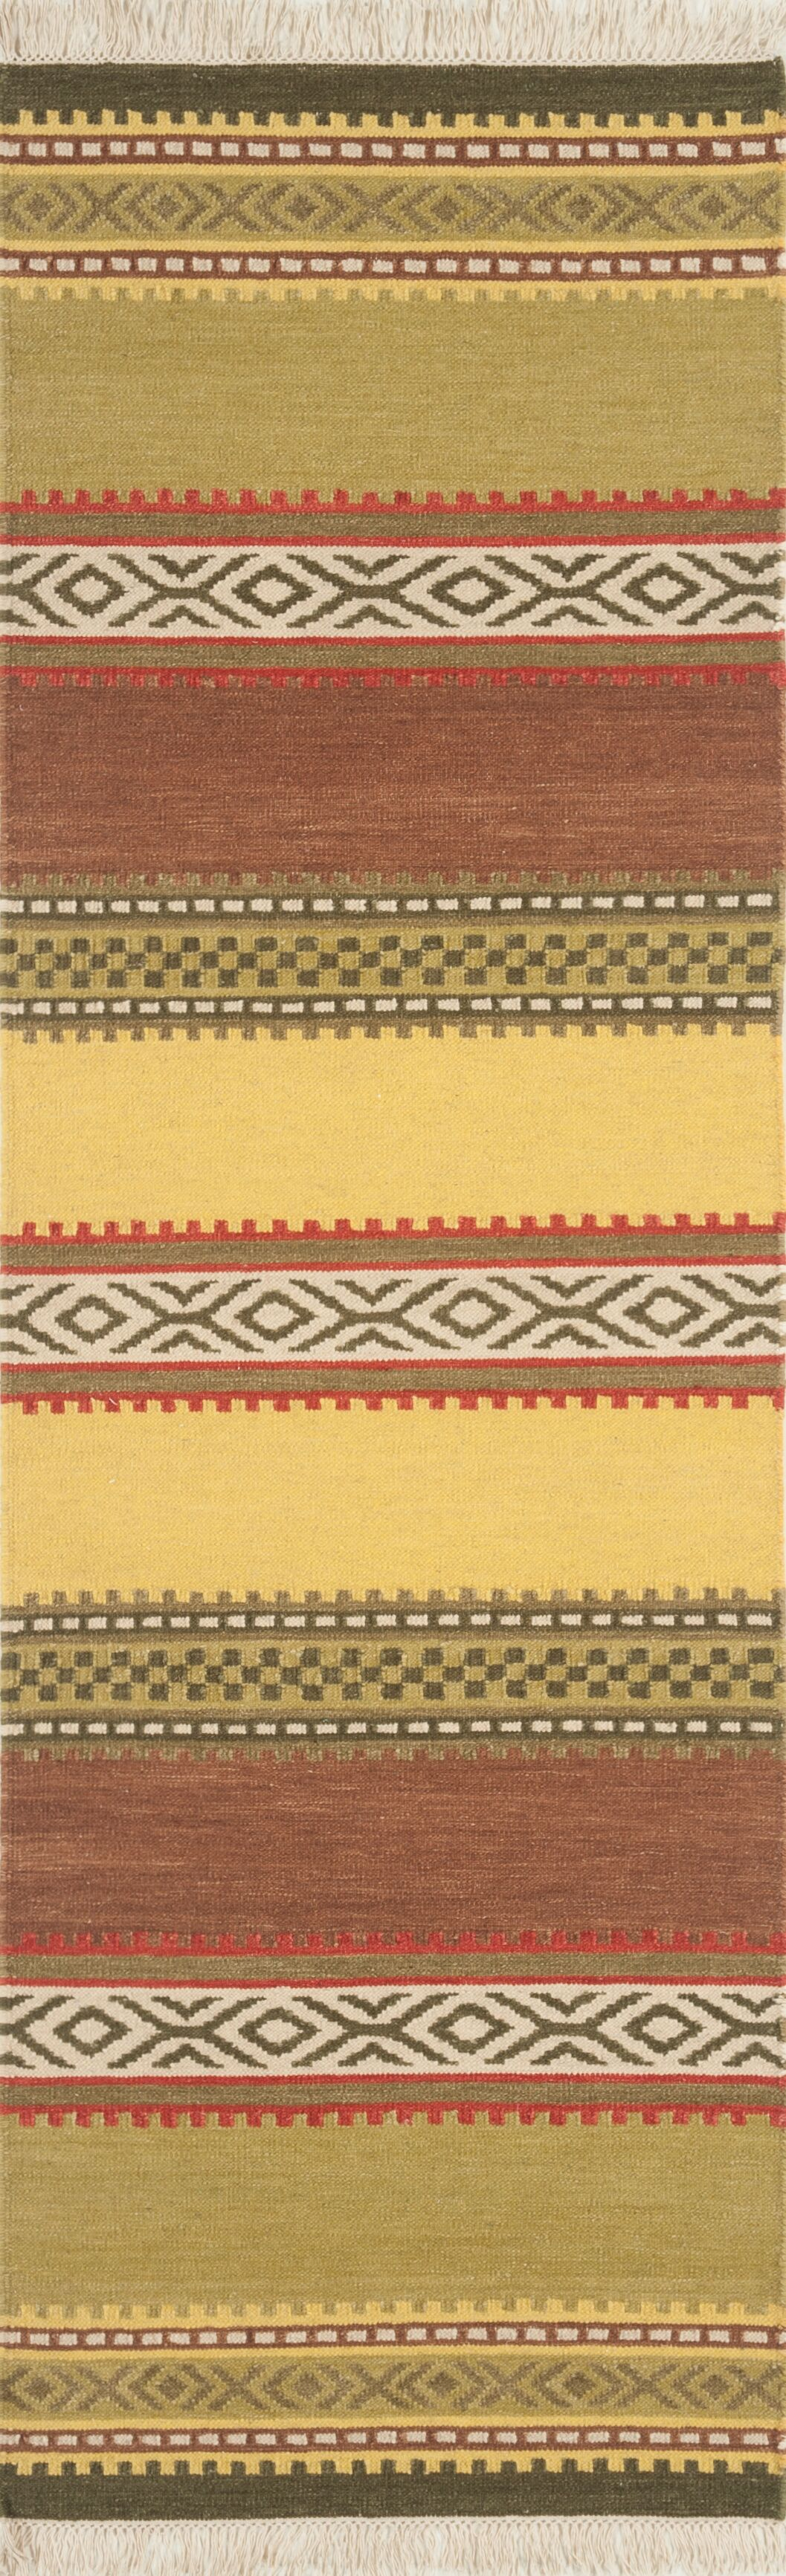 Lodge Handwoven Flatweave Wool Green Area Rug Rug Size: 8' x 10'